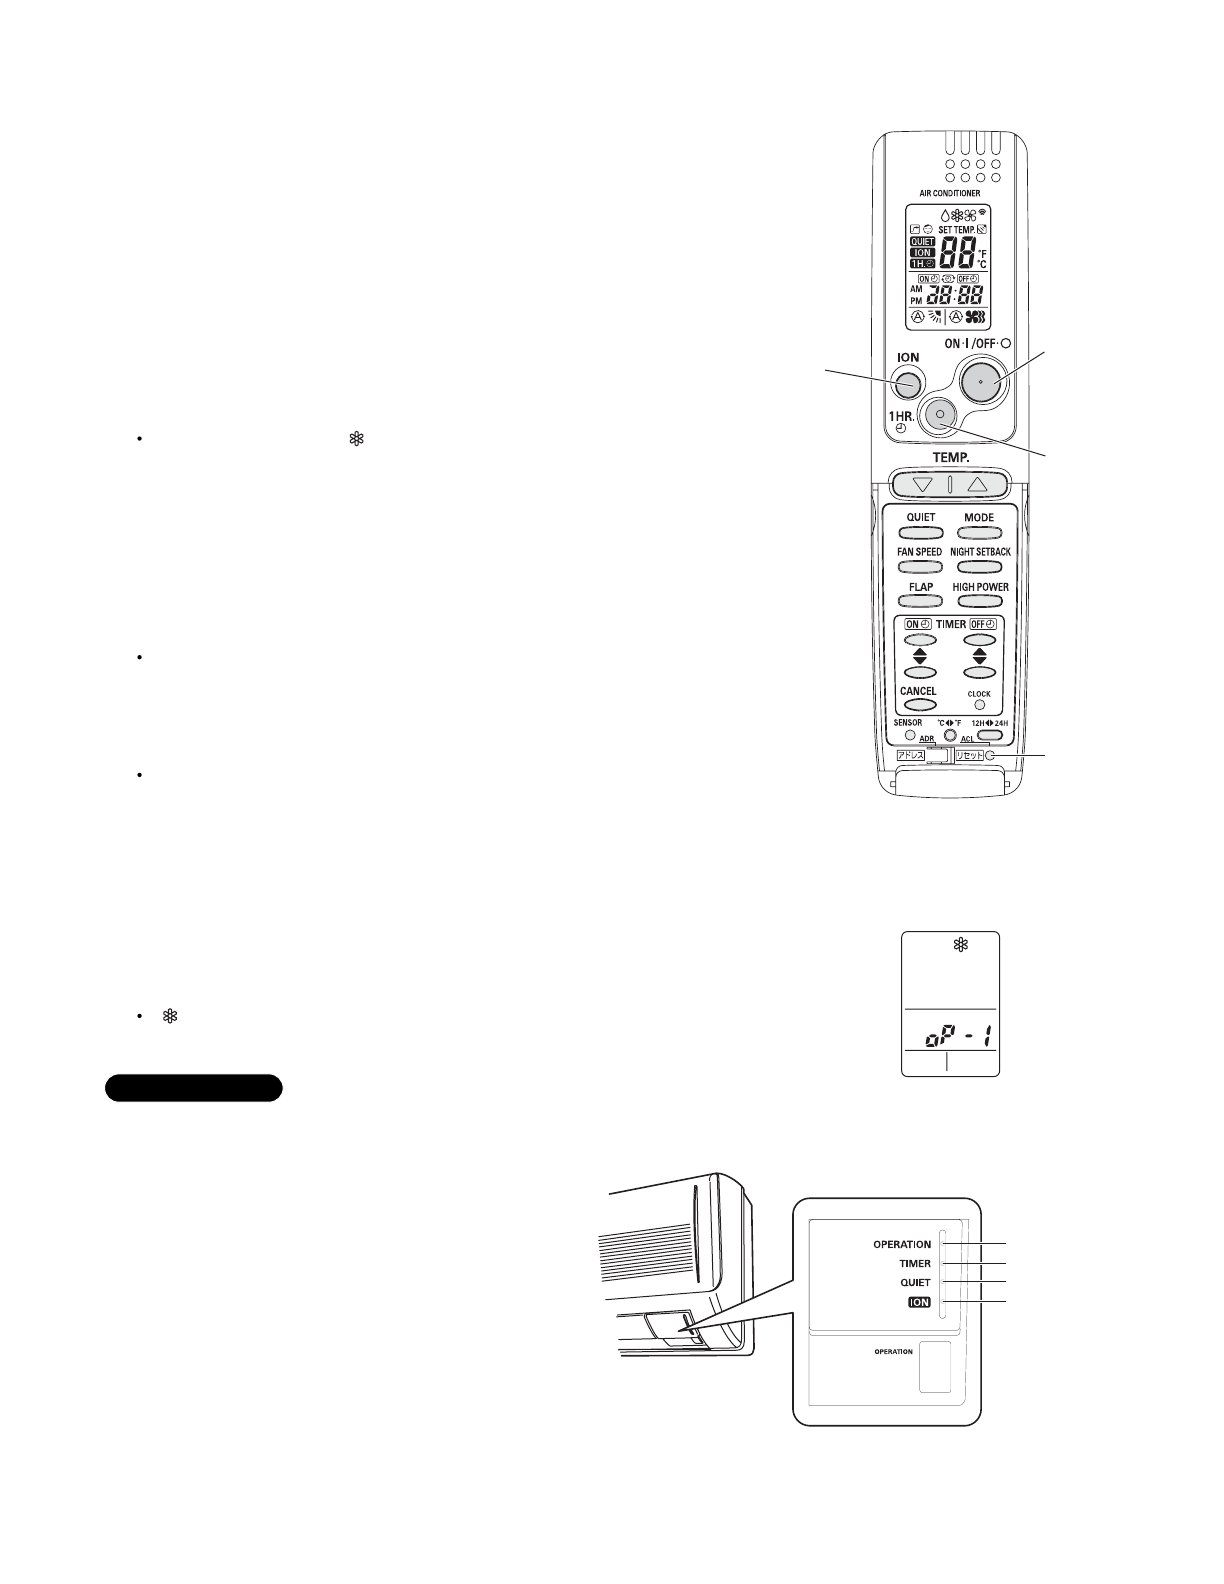 Page 41 of Sanyo Air Conditioner C2472 User Guide